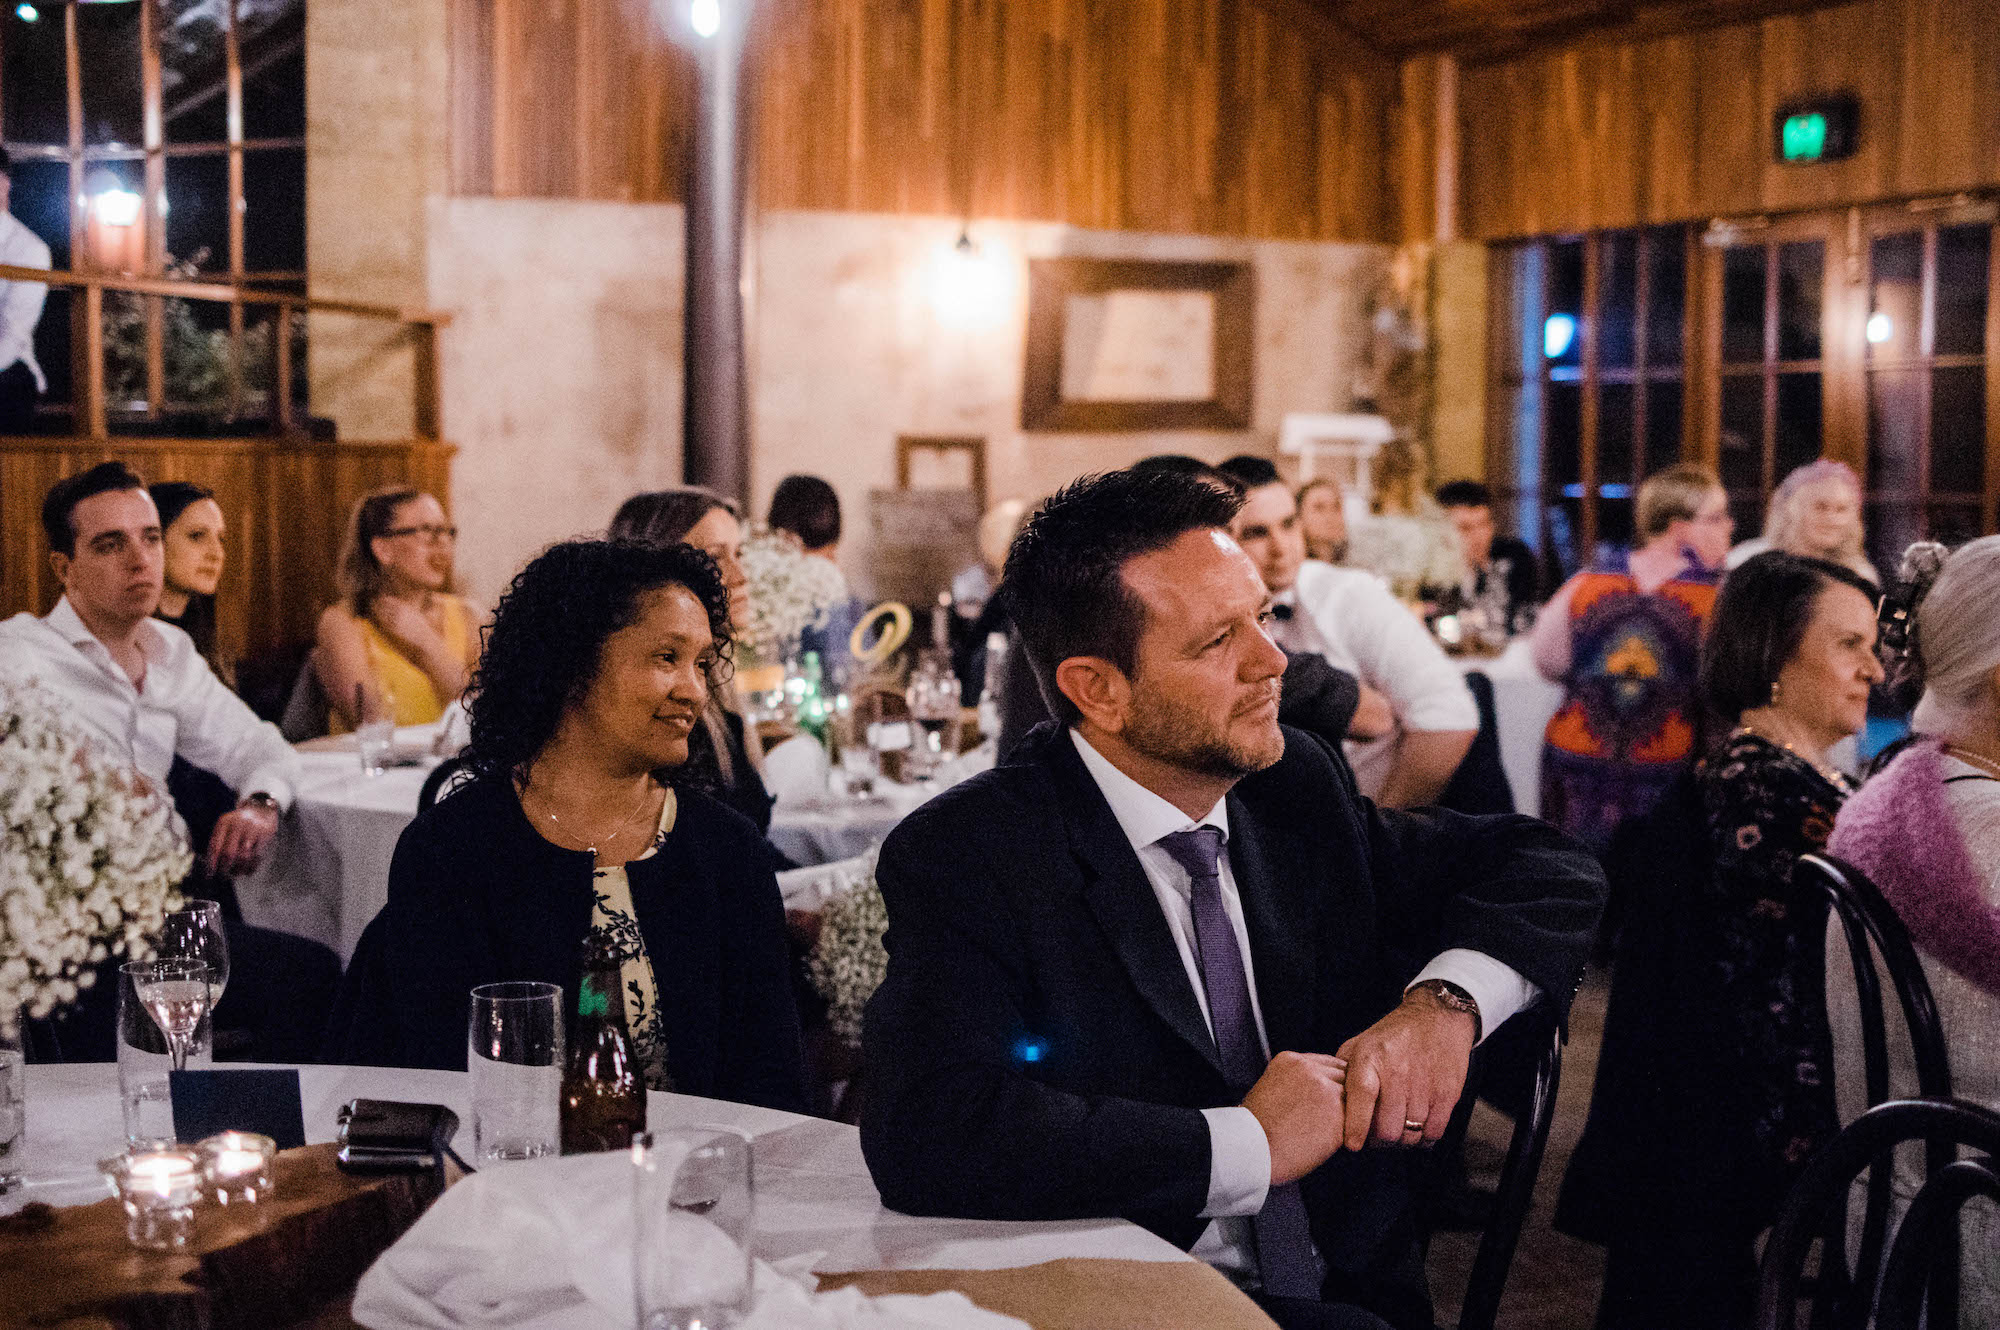 Guests smile during the bride & groom's speech at their Perth wedding.